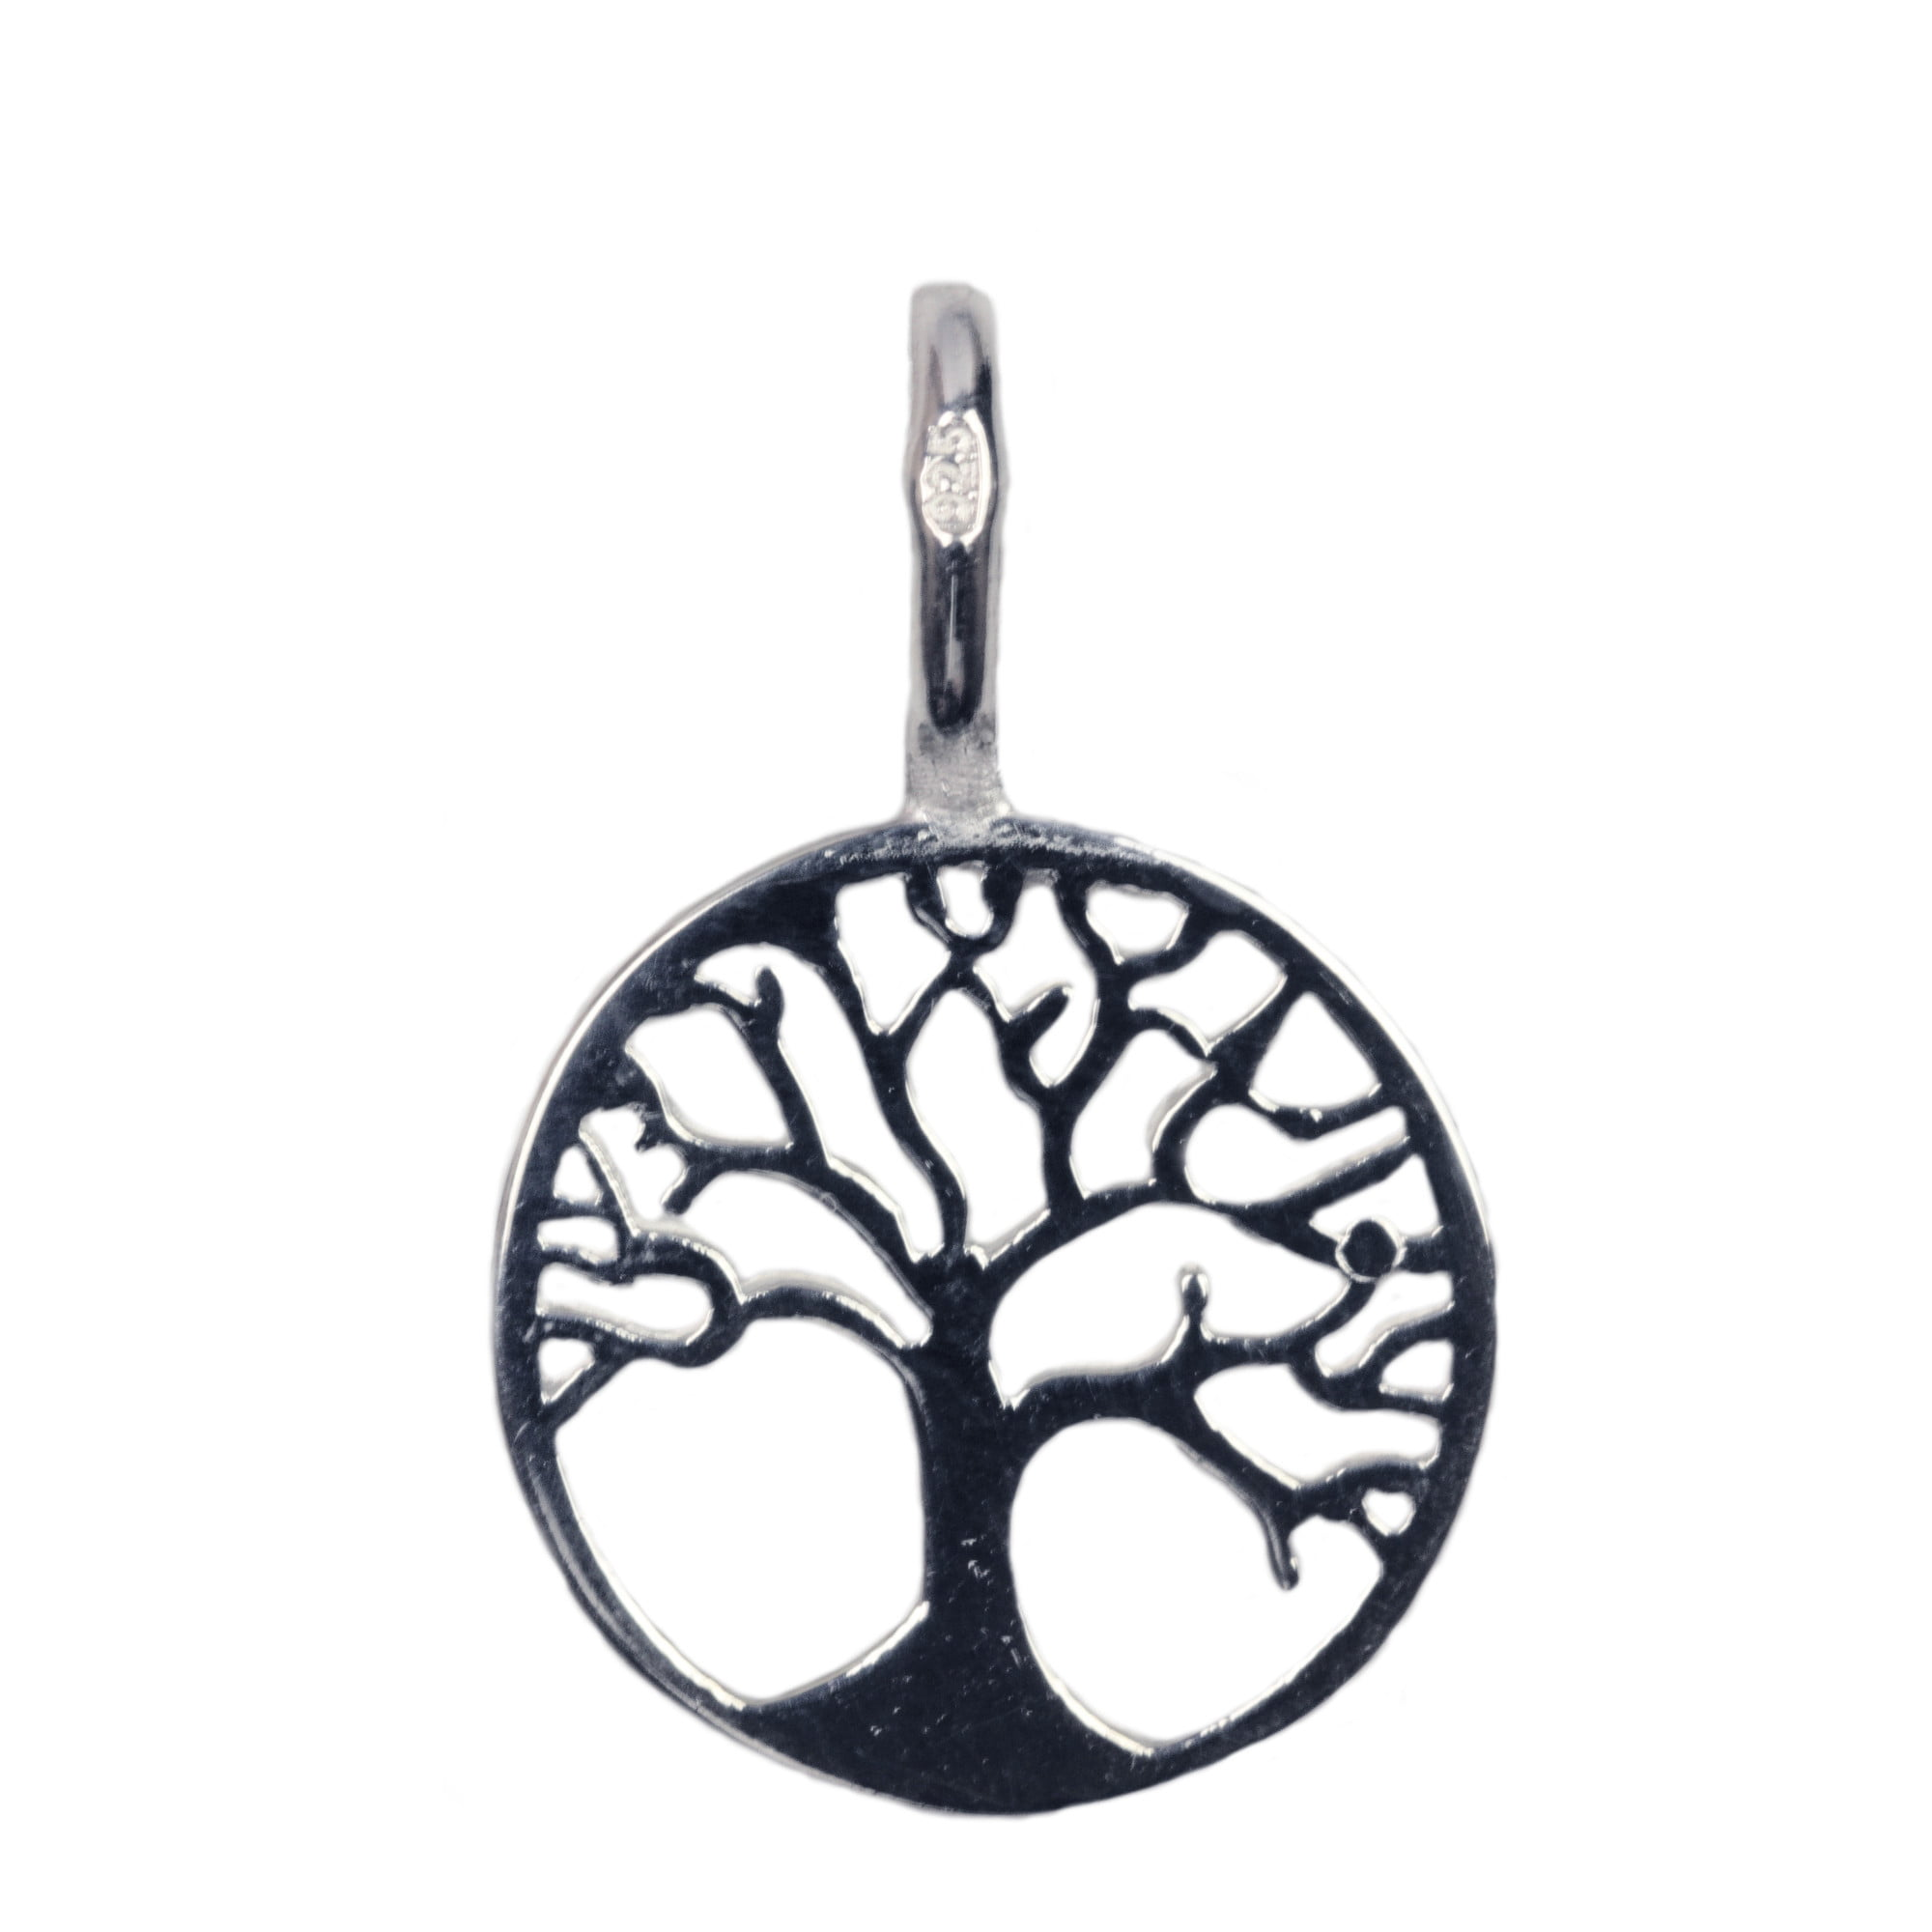 Tree of life charm pendant in sterling silver